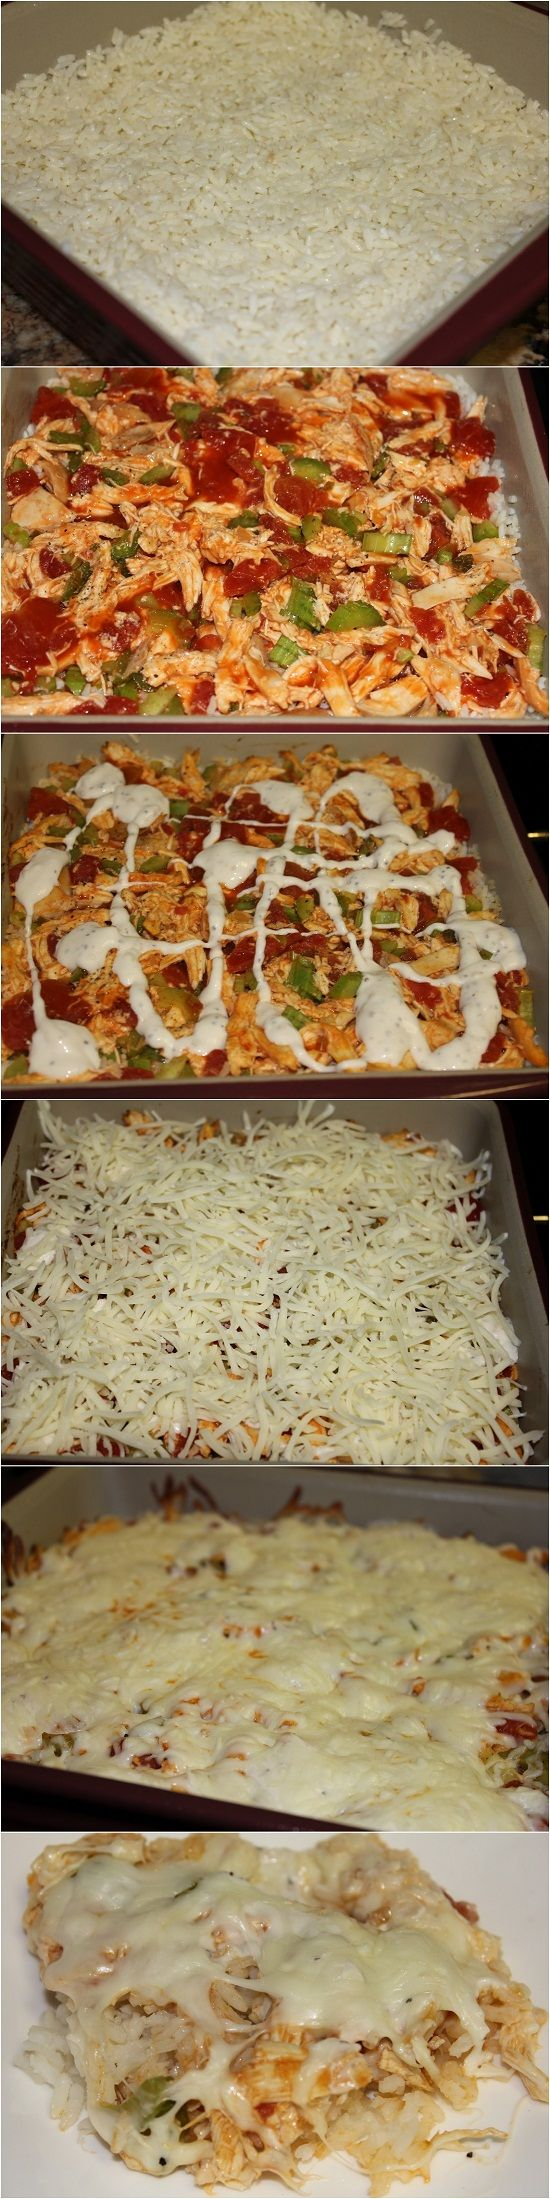 Buffalo Chicken Casserole - I made the chicken in the crockpot and used ranch dressing & it was delicious.